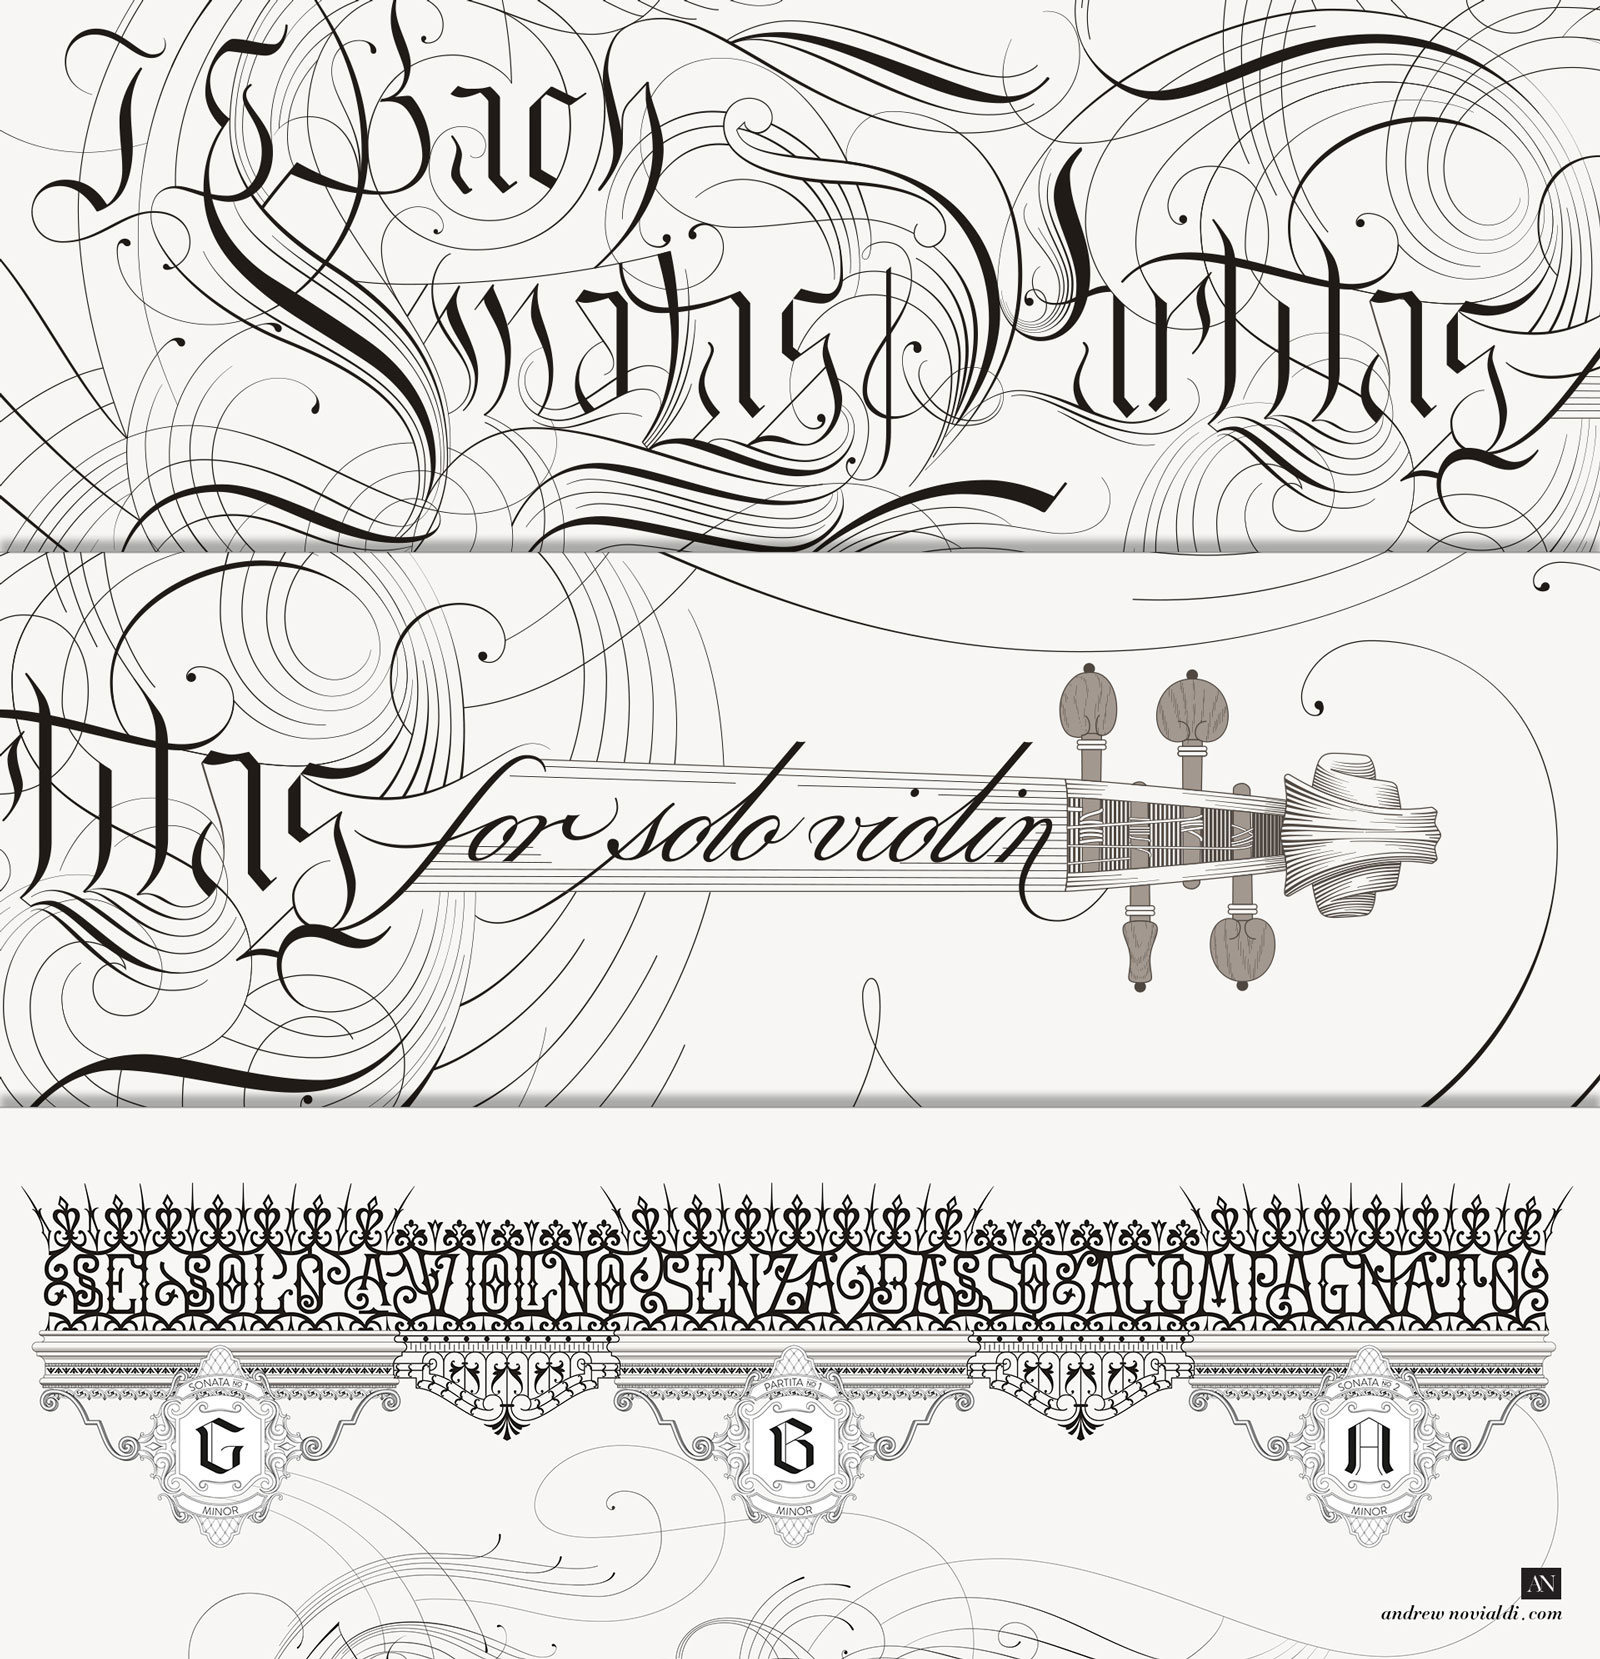 Bach Sonatas and Partitas for Solo Violin Calligraphic Flourishing Detail Wrought Iron Poster Design.